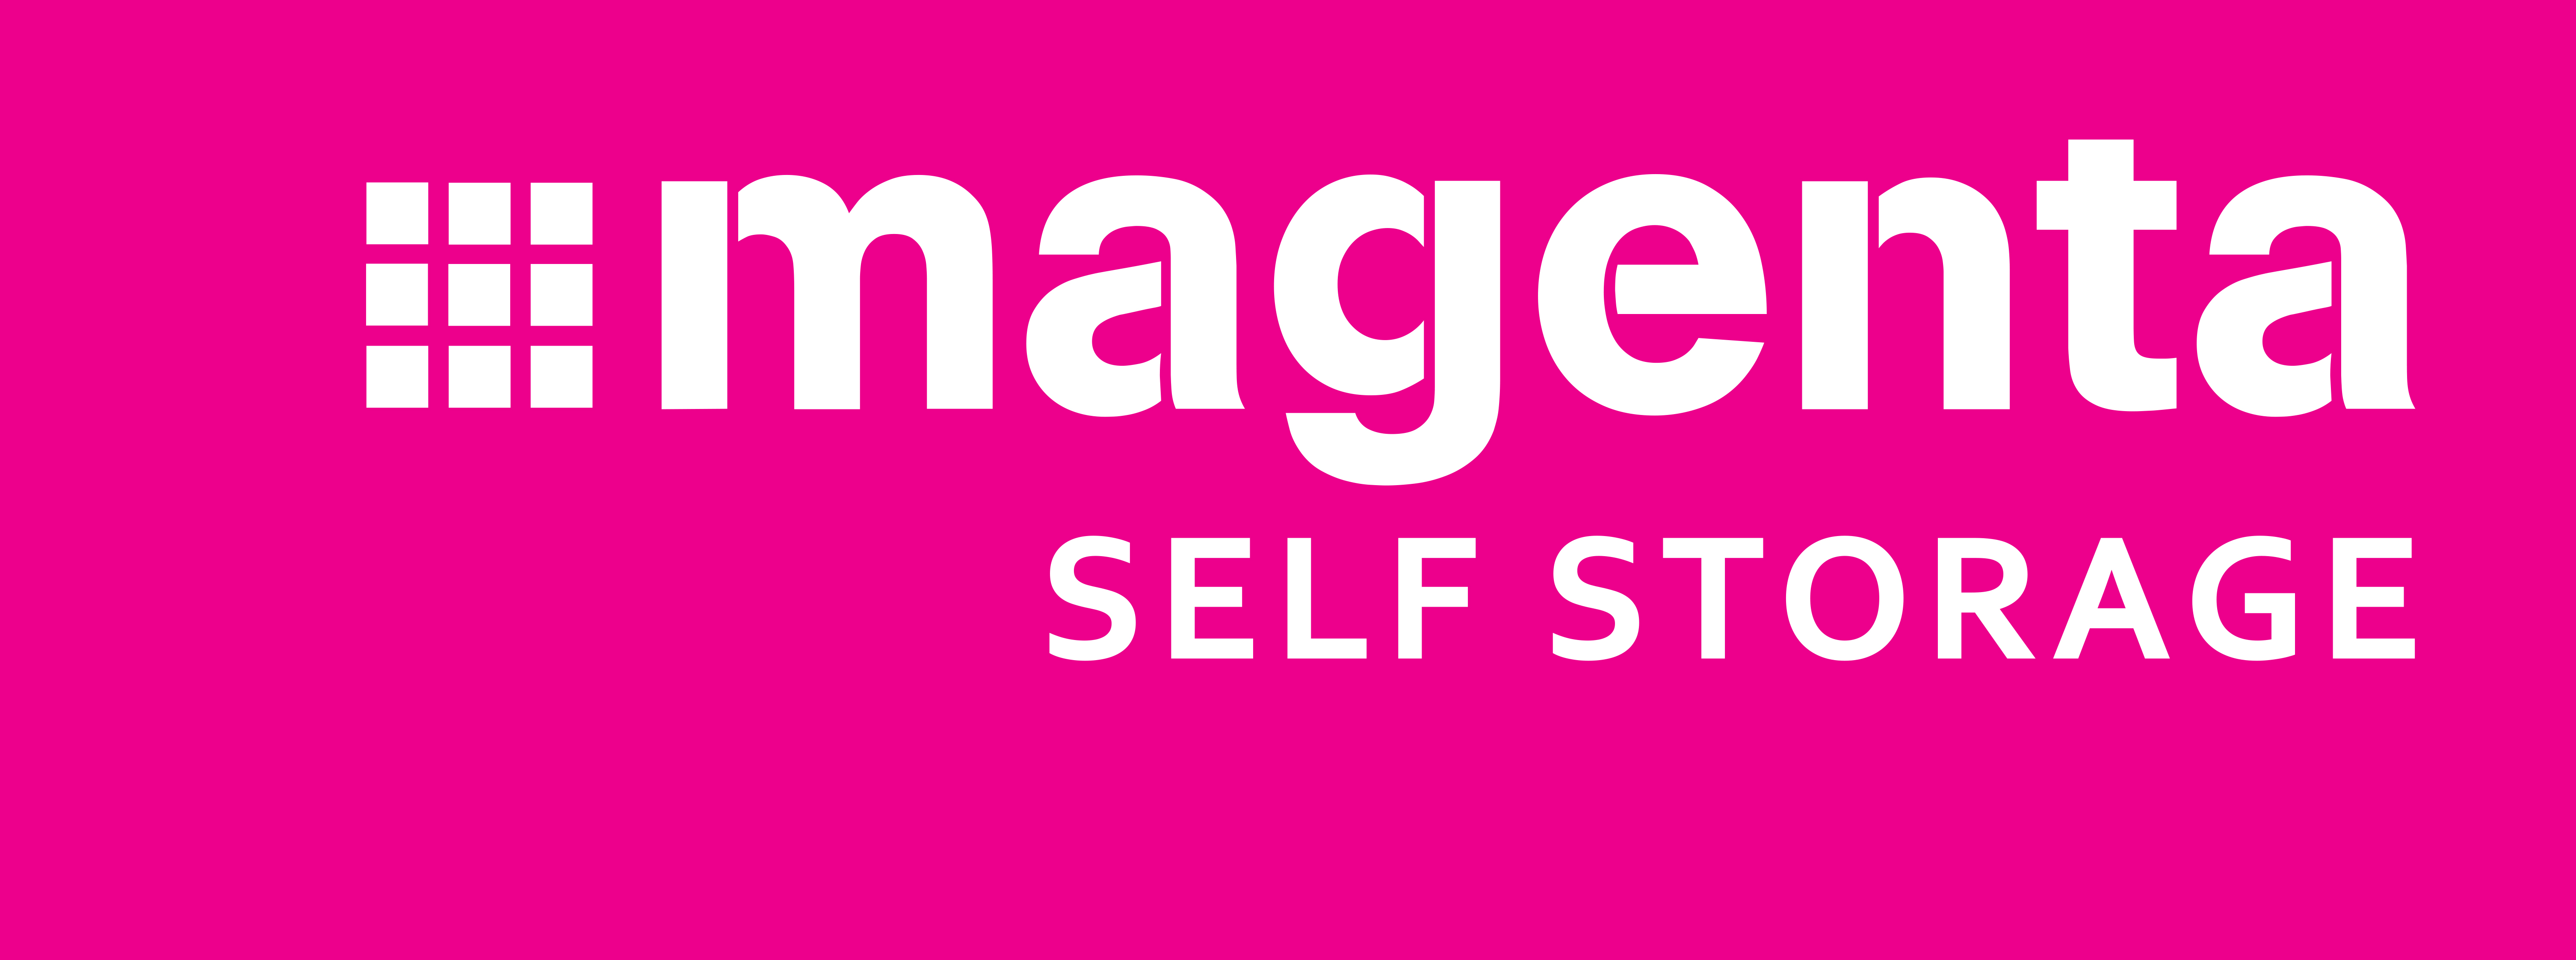 Magenta Self Storage logo